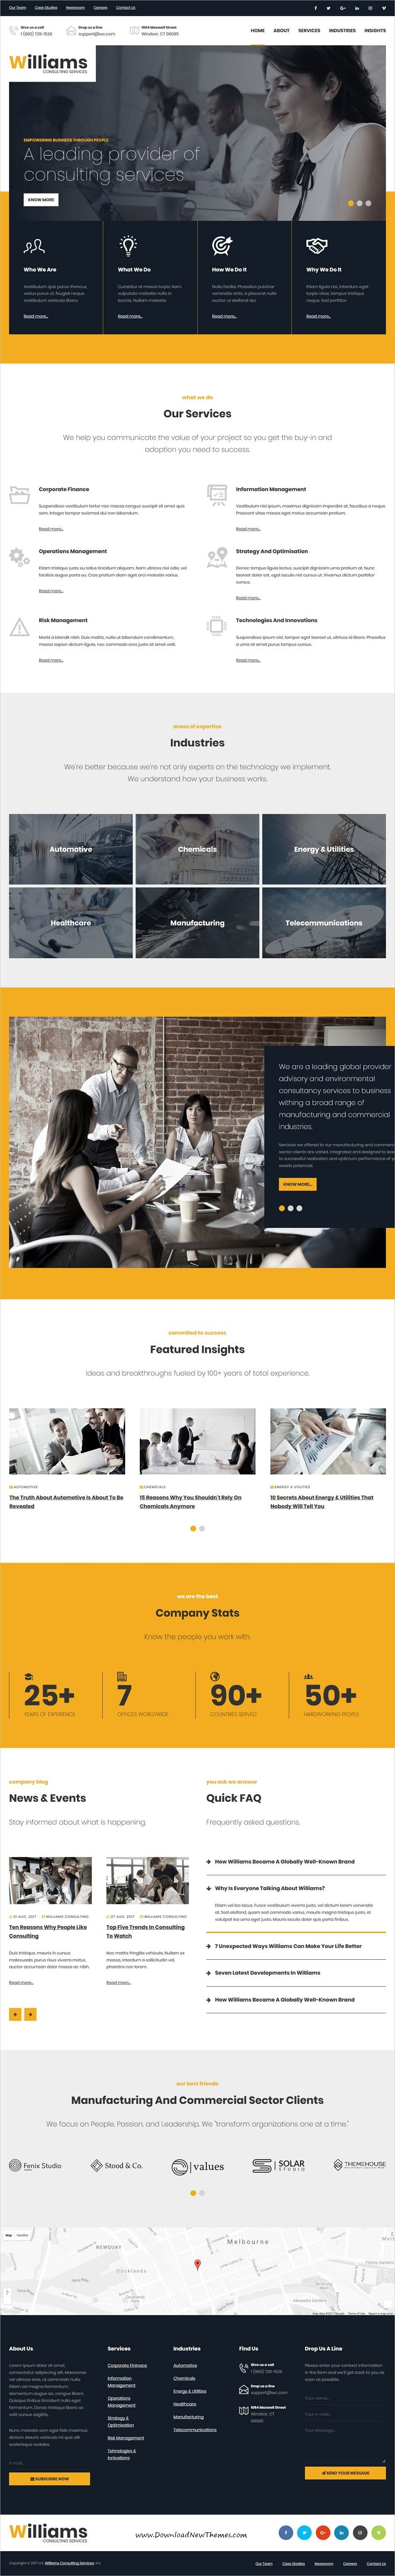 Williams Business HTML Temaplate